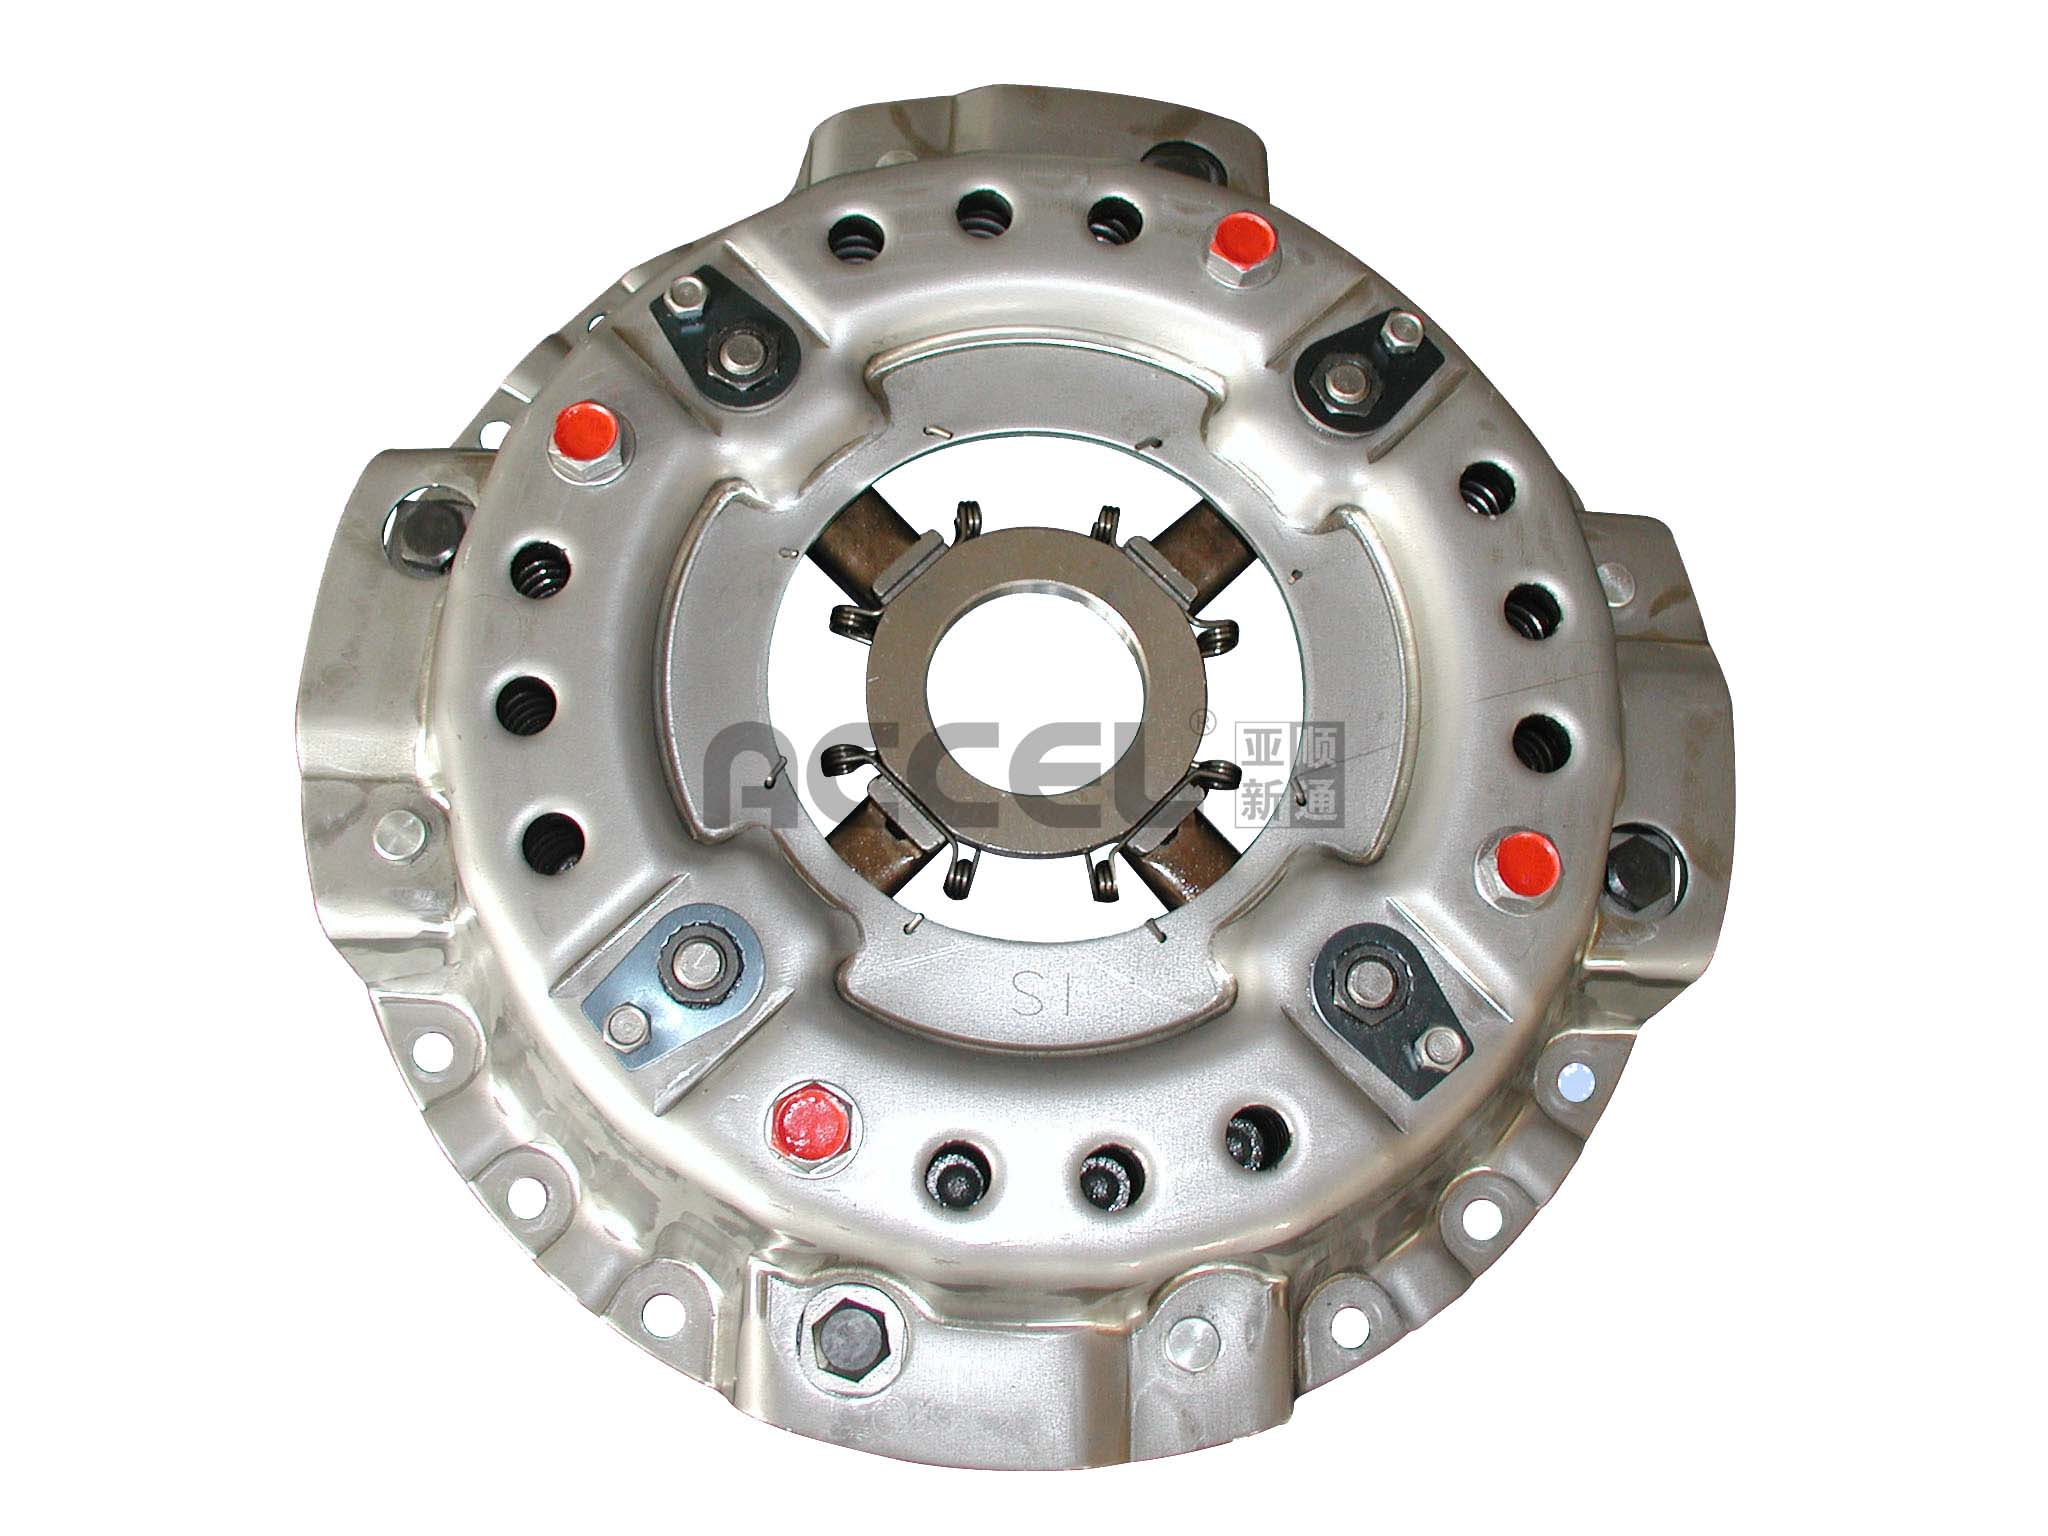 Clutch Cover/OE:31210-1221/300*190*350/CHN-005/HINO/LY179/ISC549/ME520086